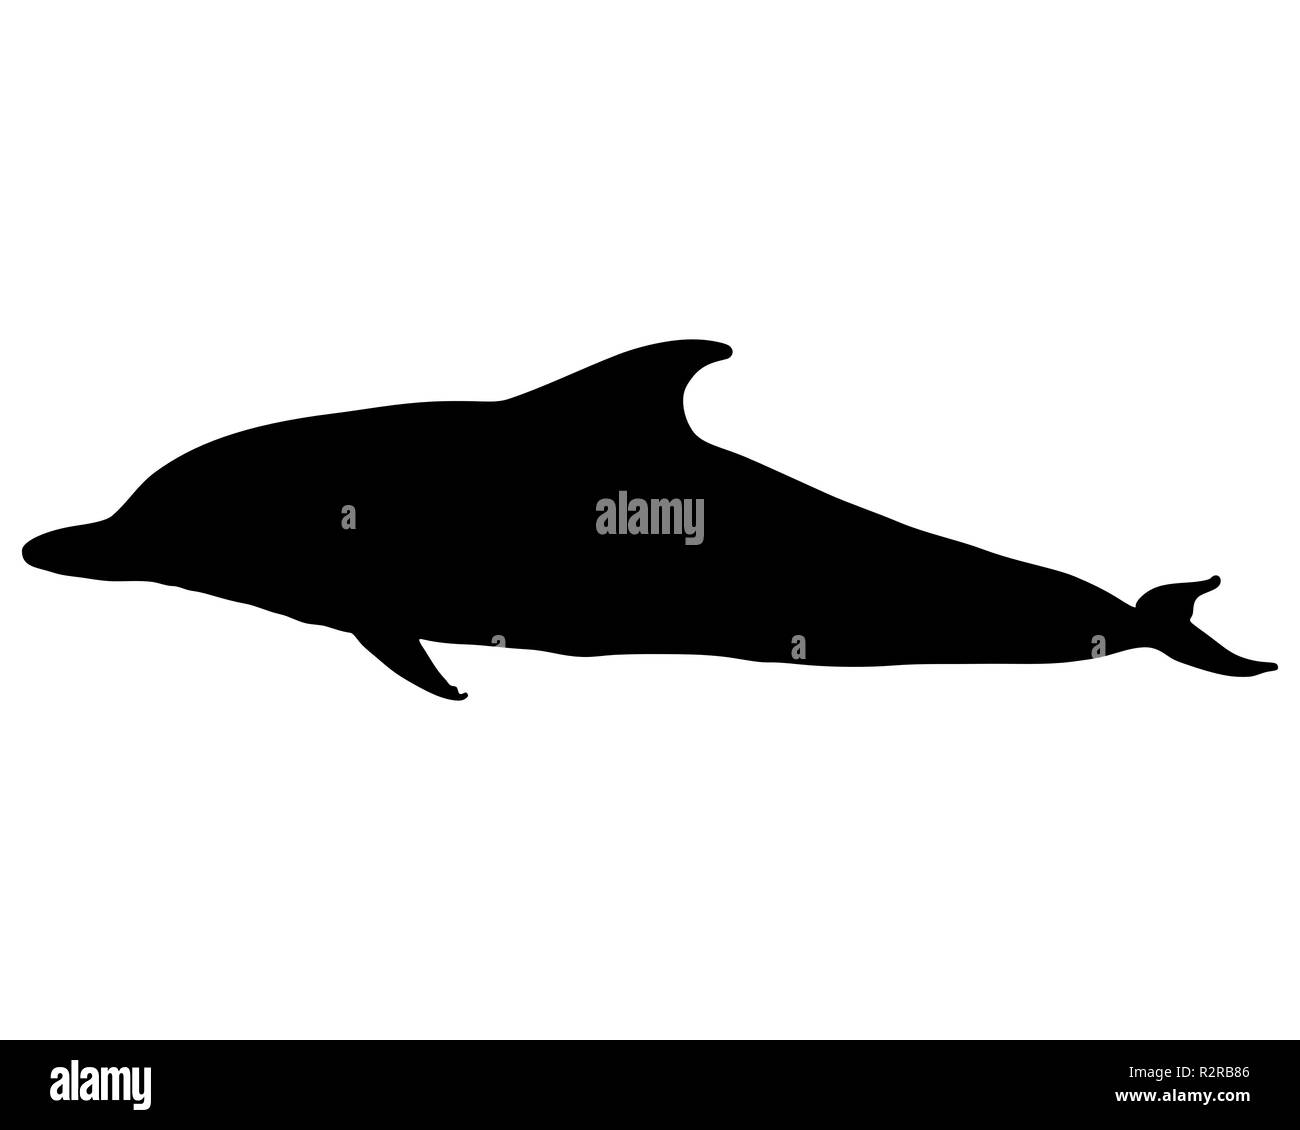 Dolphin Silhouette Stock Photo Alamy Find high quality dolphin silhouette, all silhouette images can be downloaded for free for personal use only. https www alamy com dolphin silhouette image225477846 html